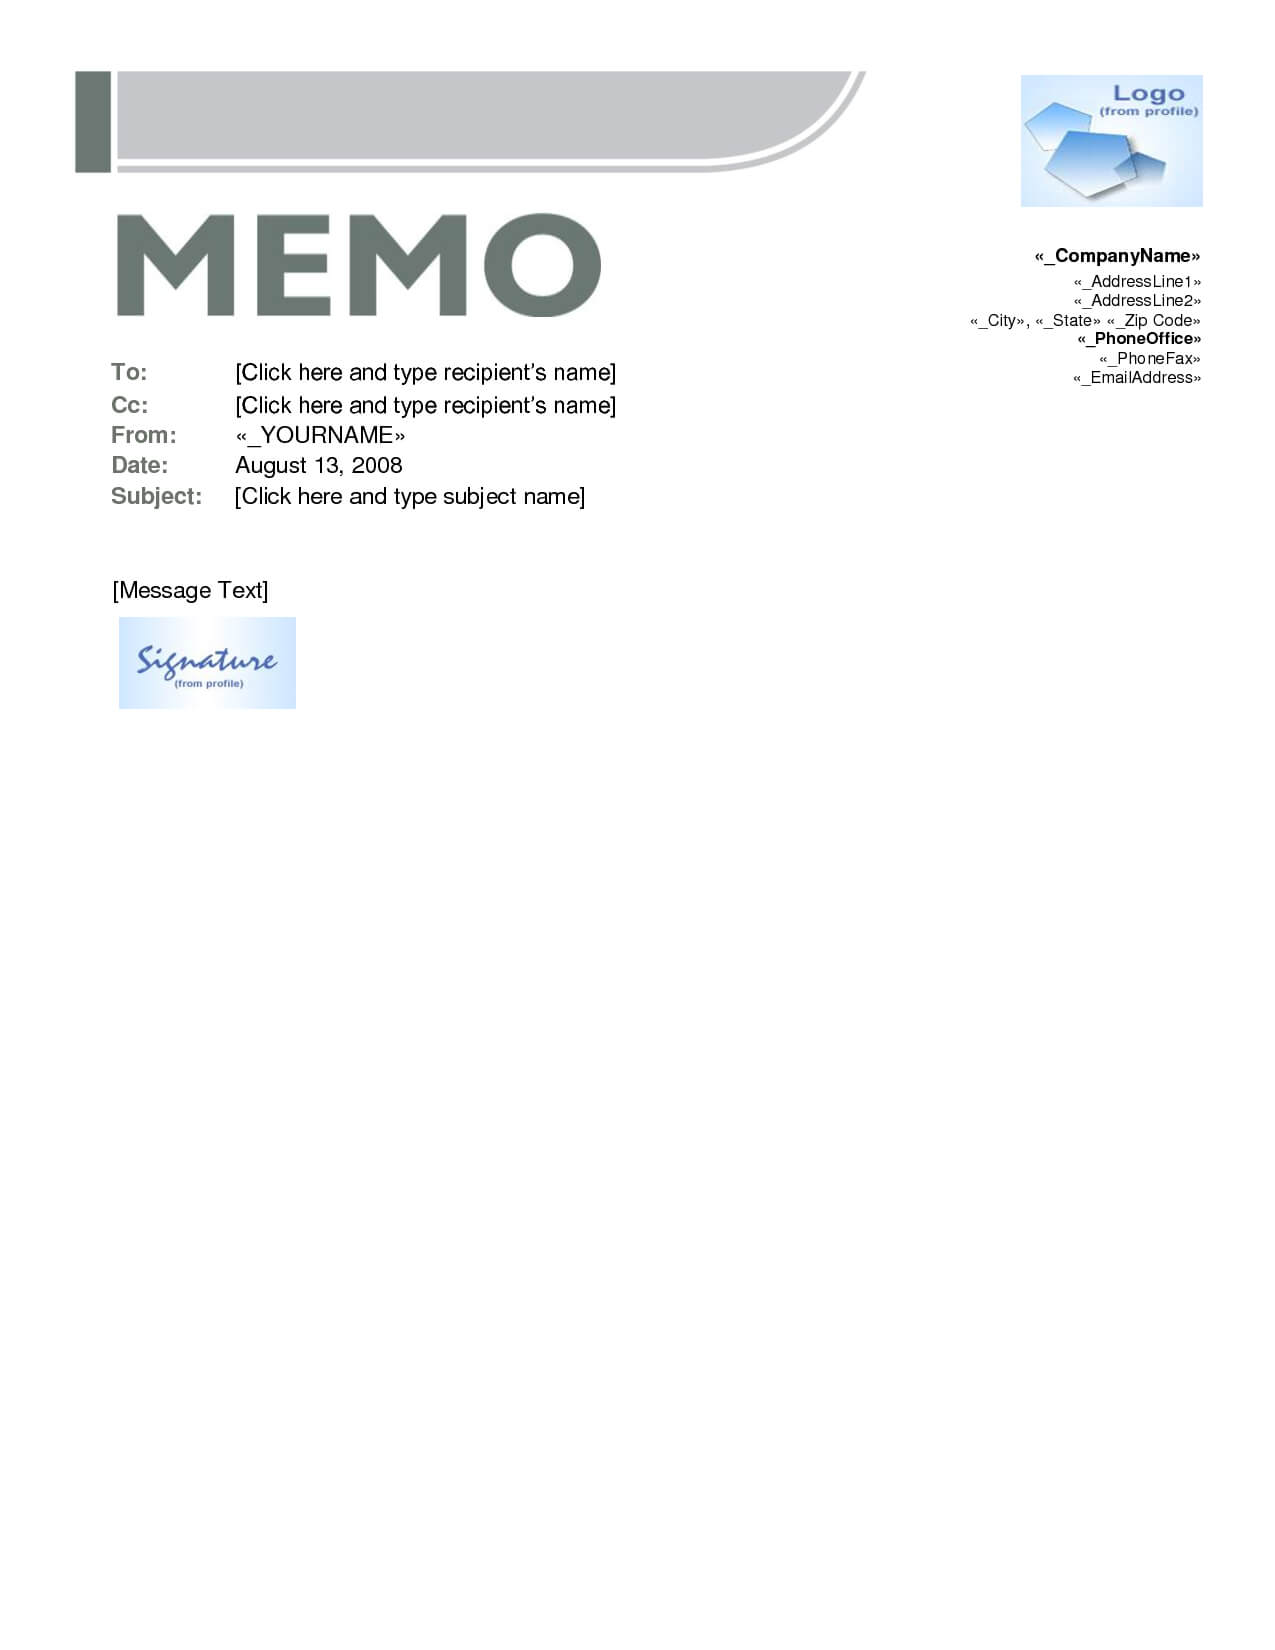 Best Photos Of Free Memo Templates Word Document - Microsoft pertaining to Memo Template Word 2010